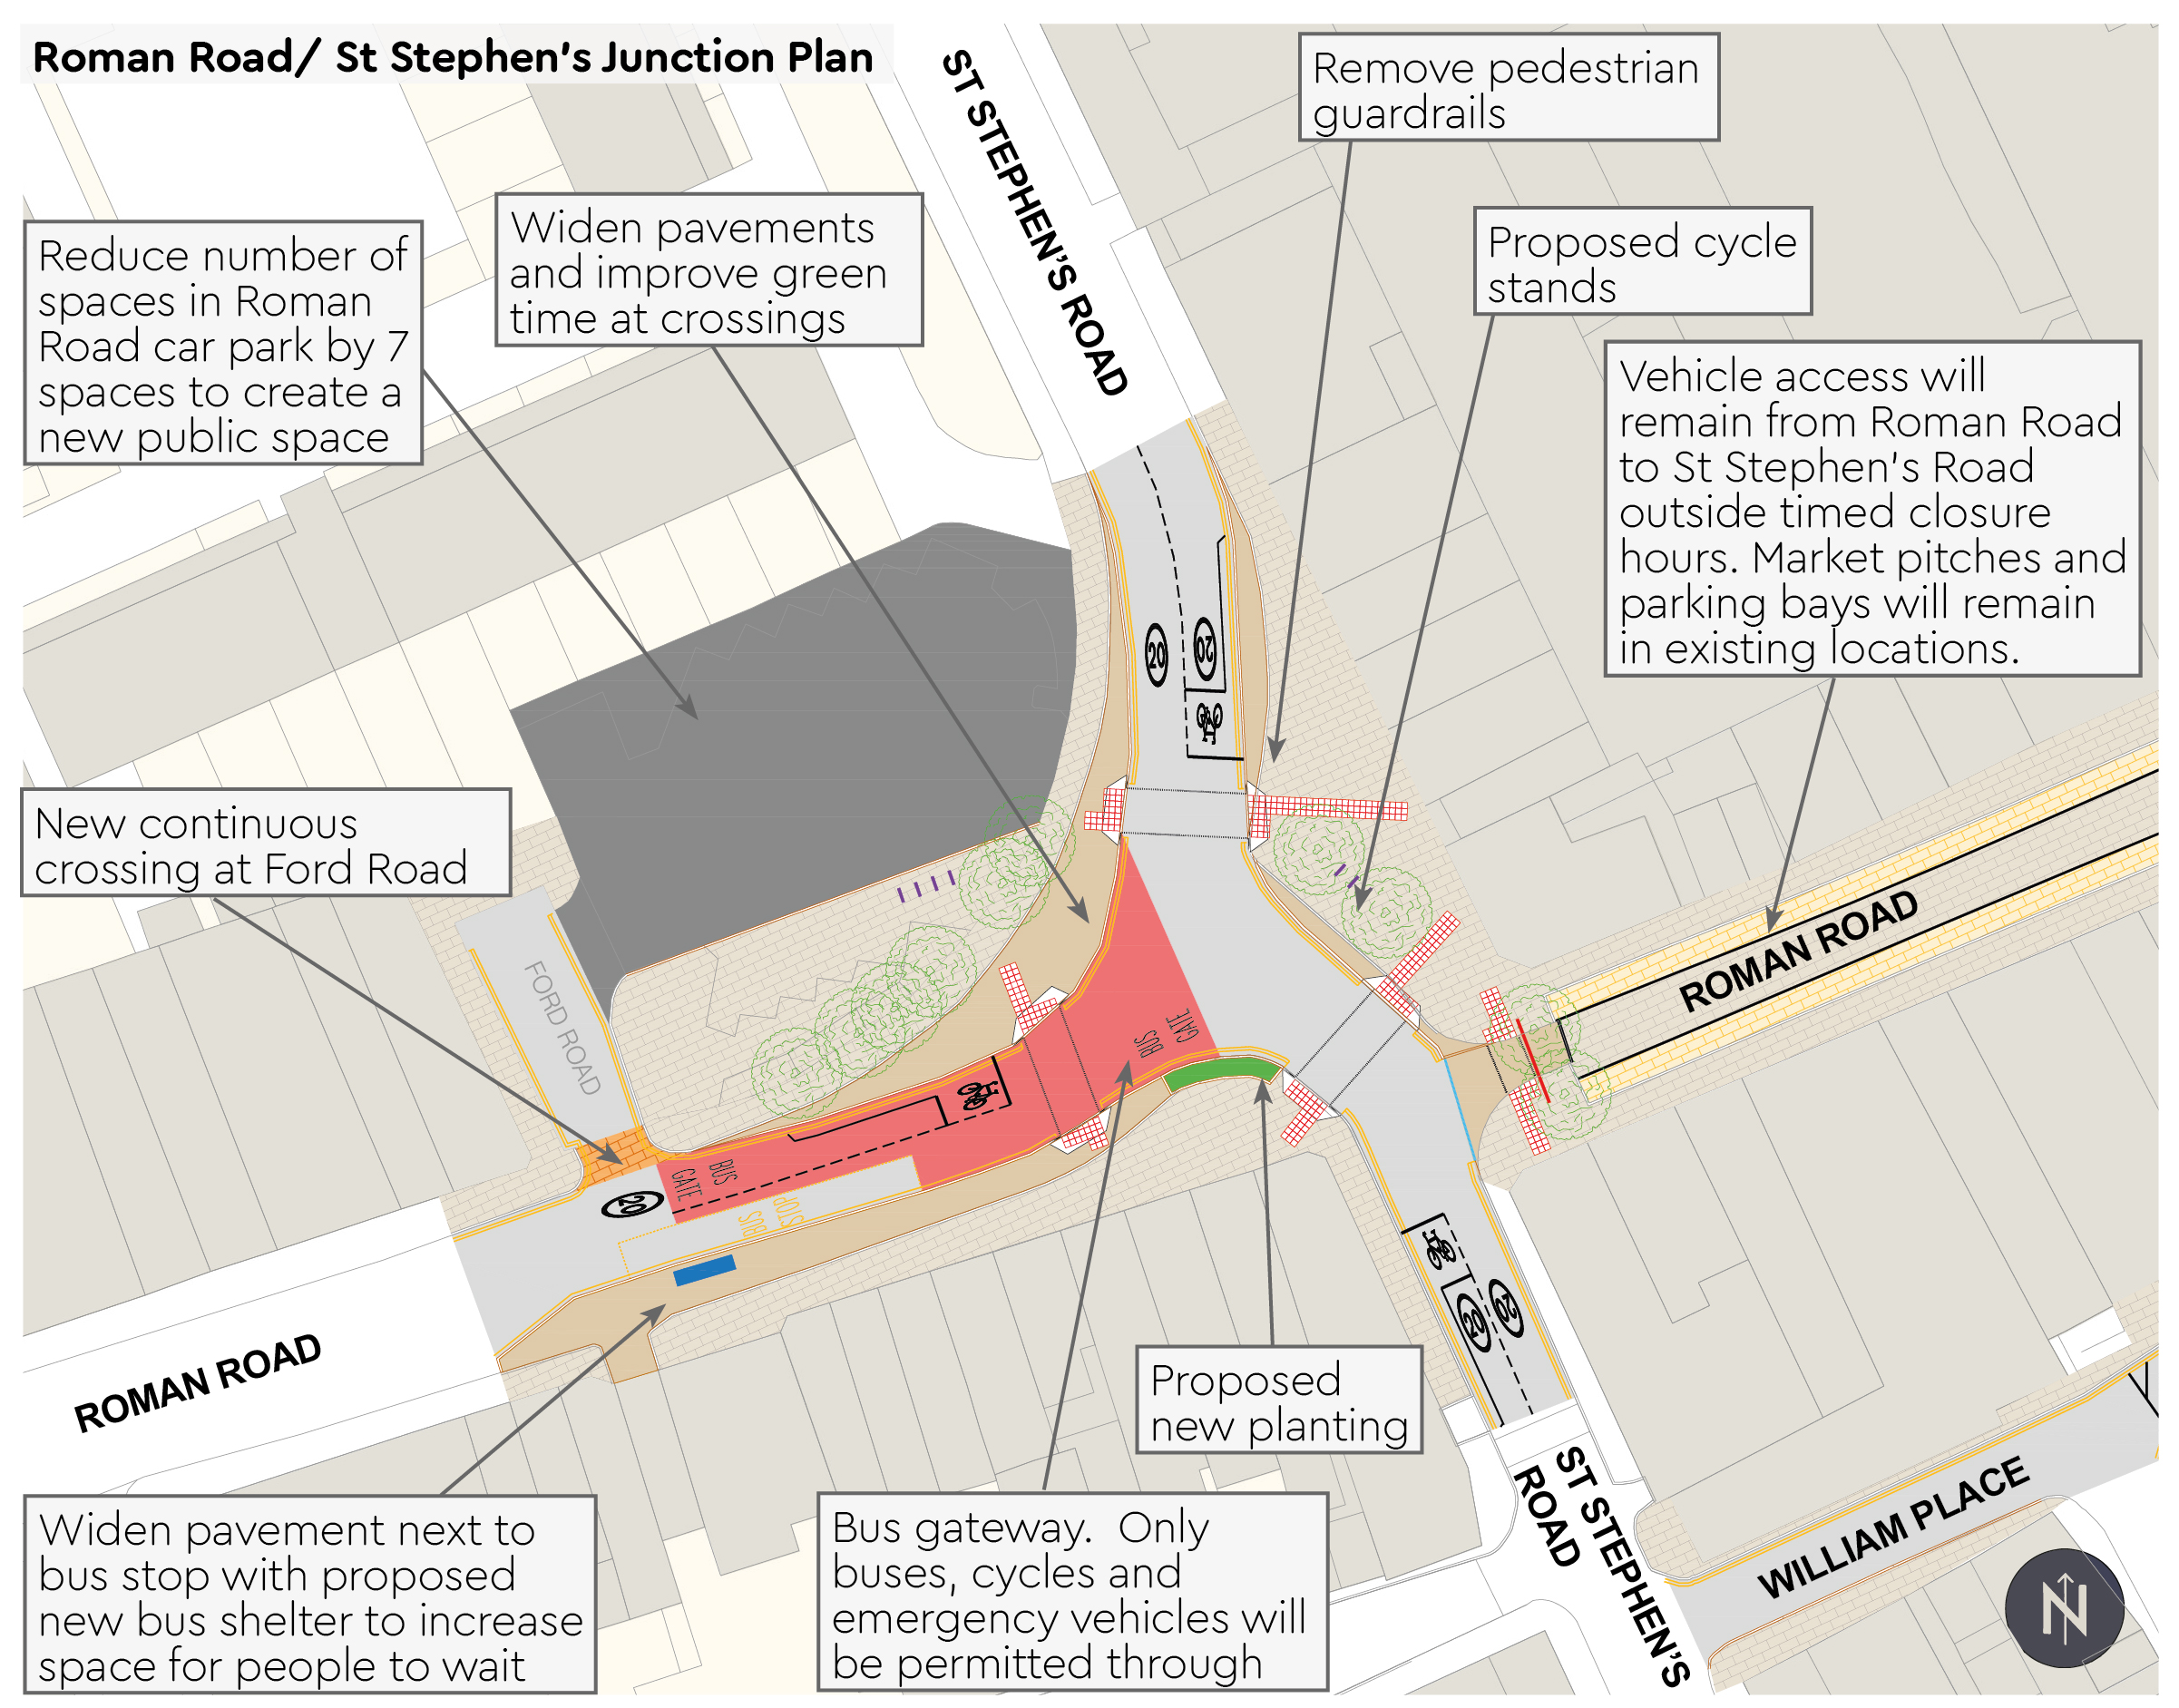 Roman Road and St Stephen's Junction Plan - Reduce number of spaces in Roman Road car park - New continuous crossings at Ford Road - Proposed cycle stands at junction